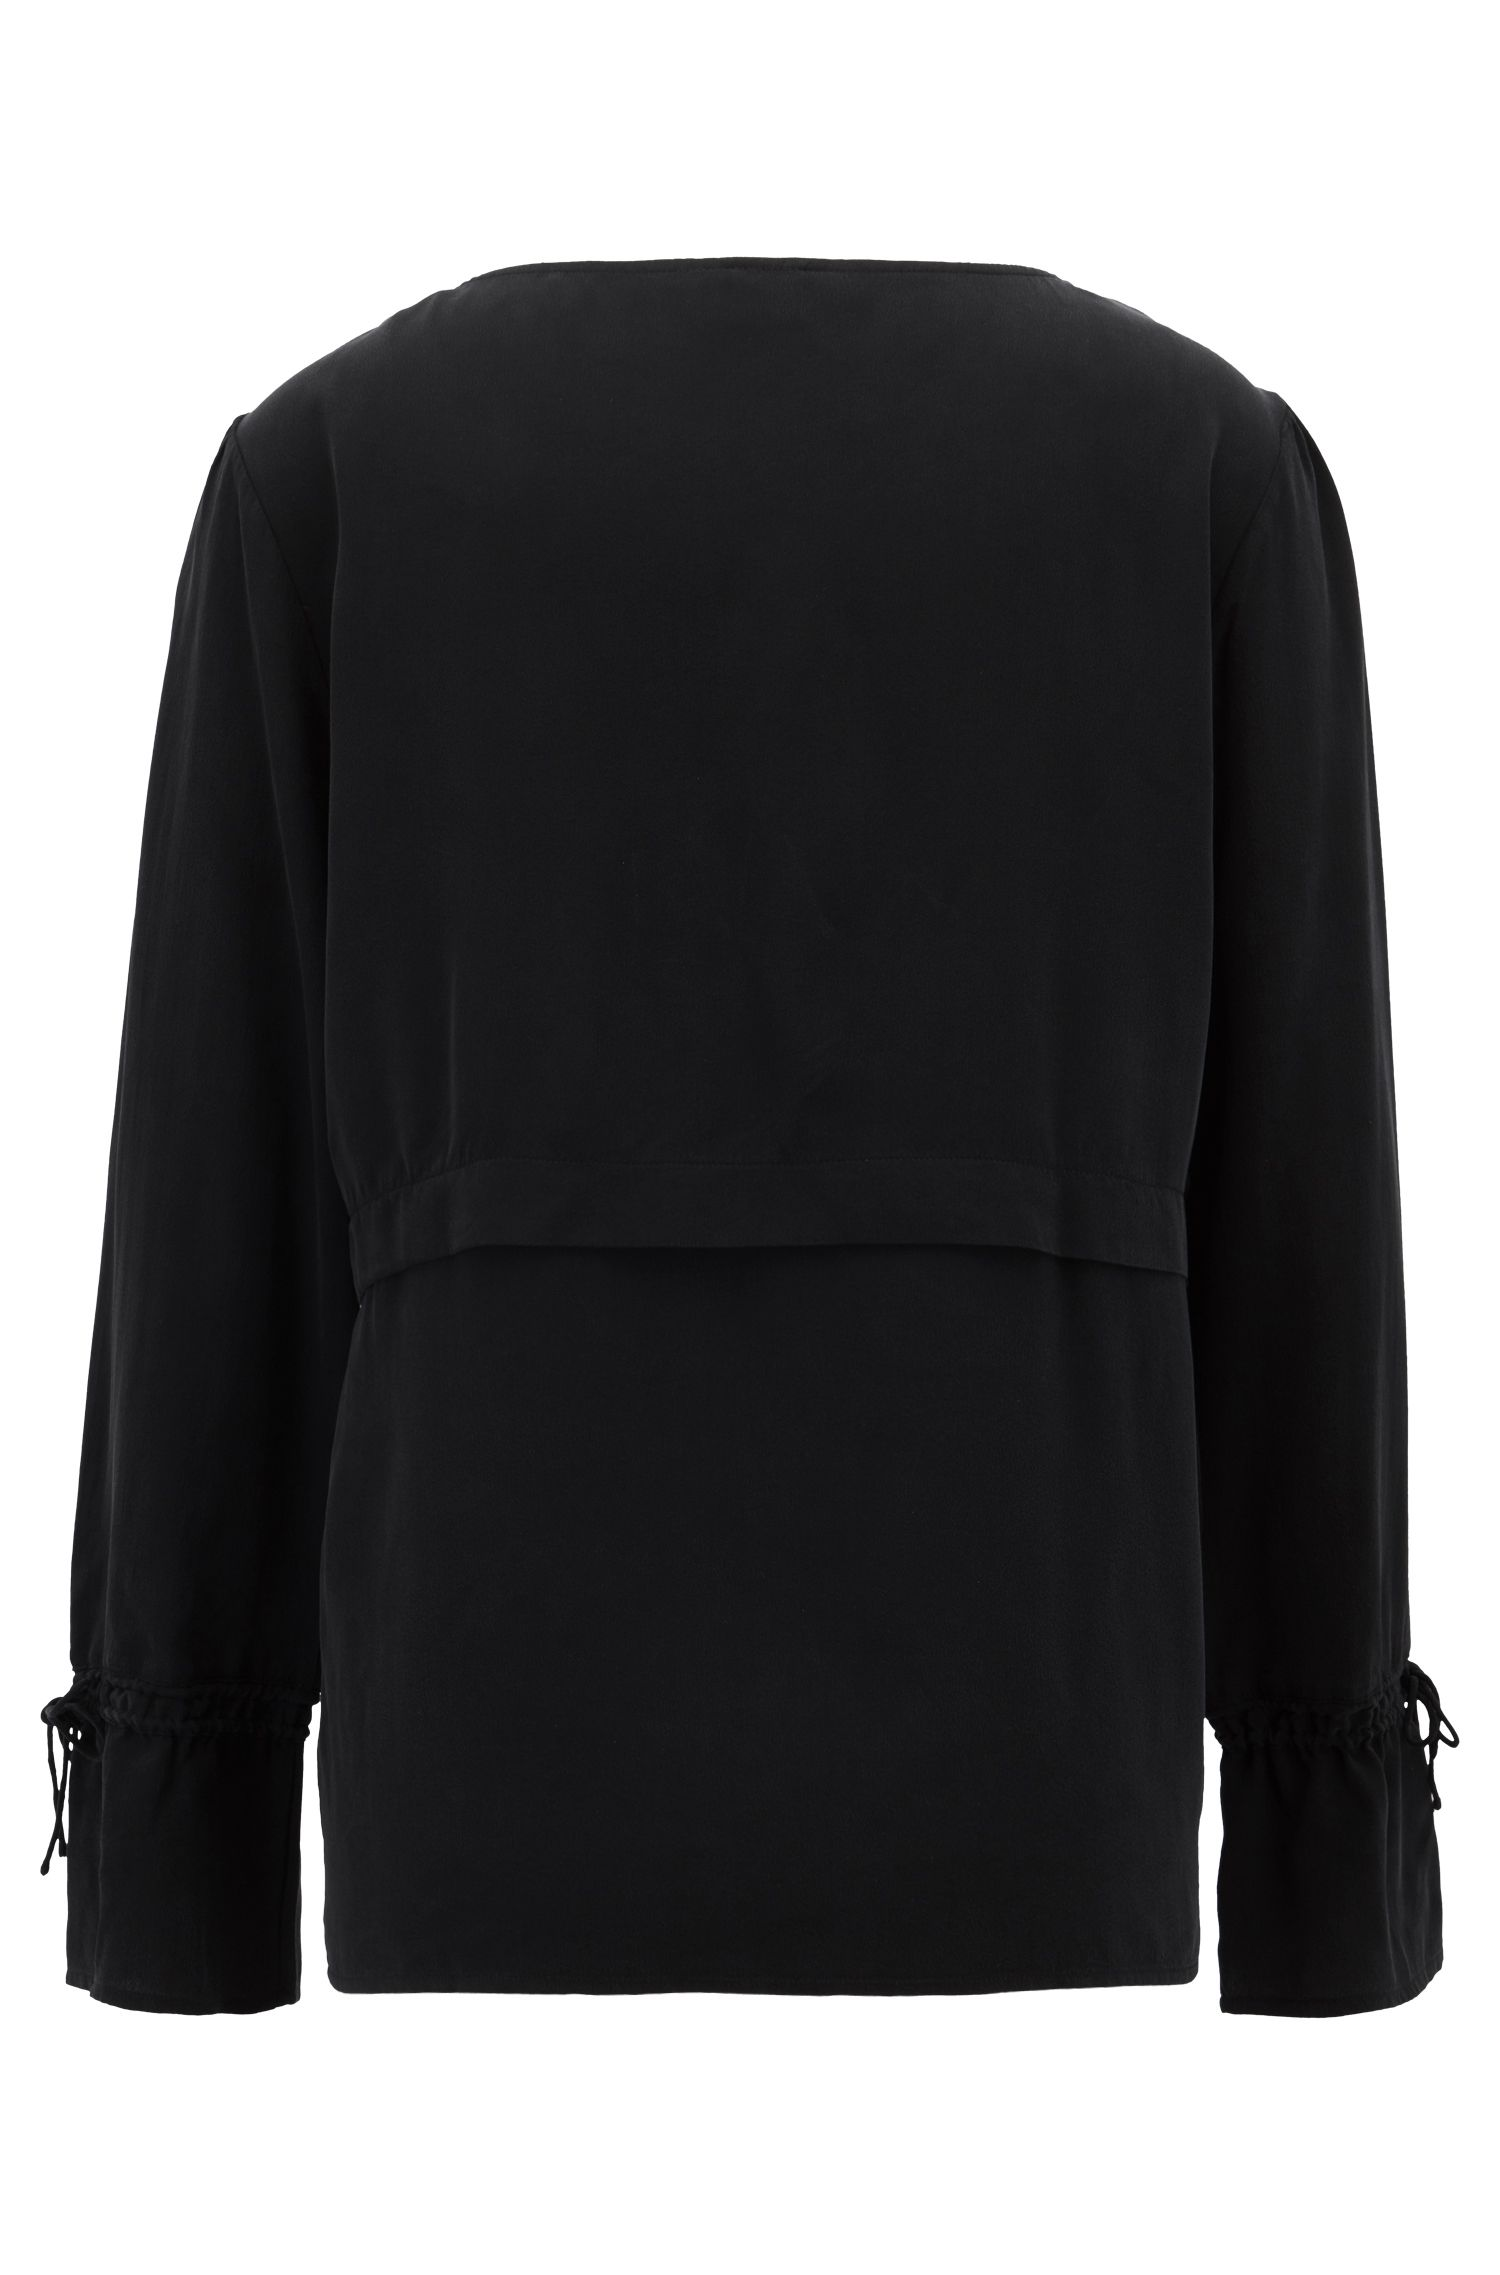 Pleat-front blouse in pure silk with gathered sleeves, Black